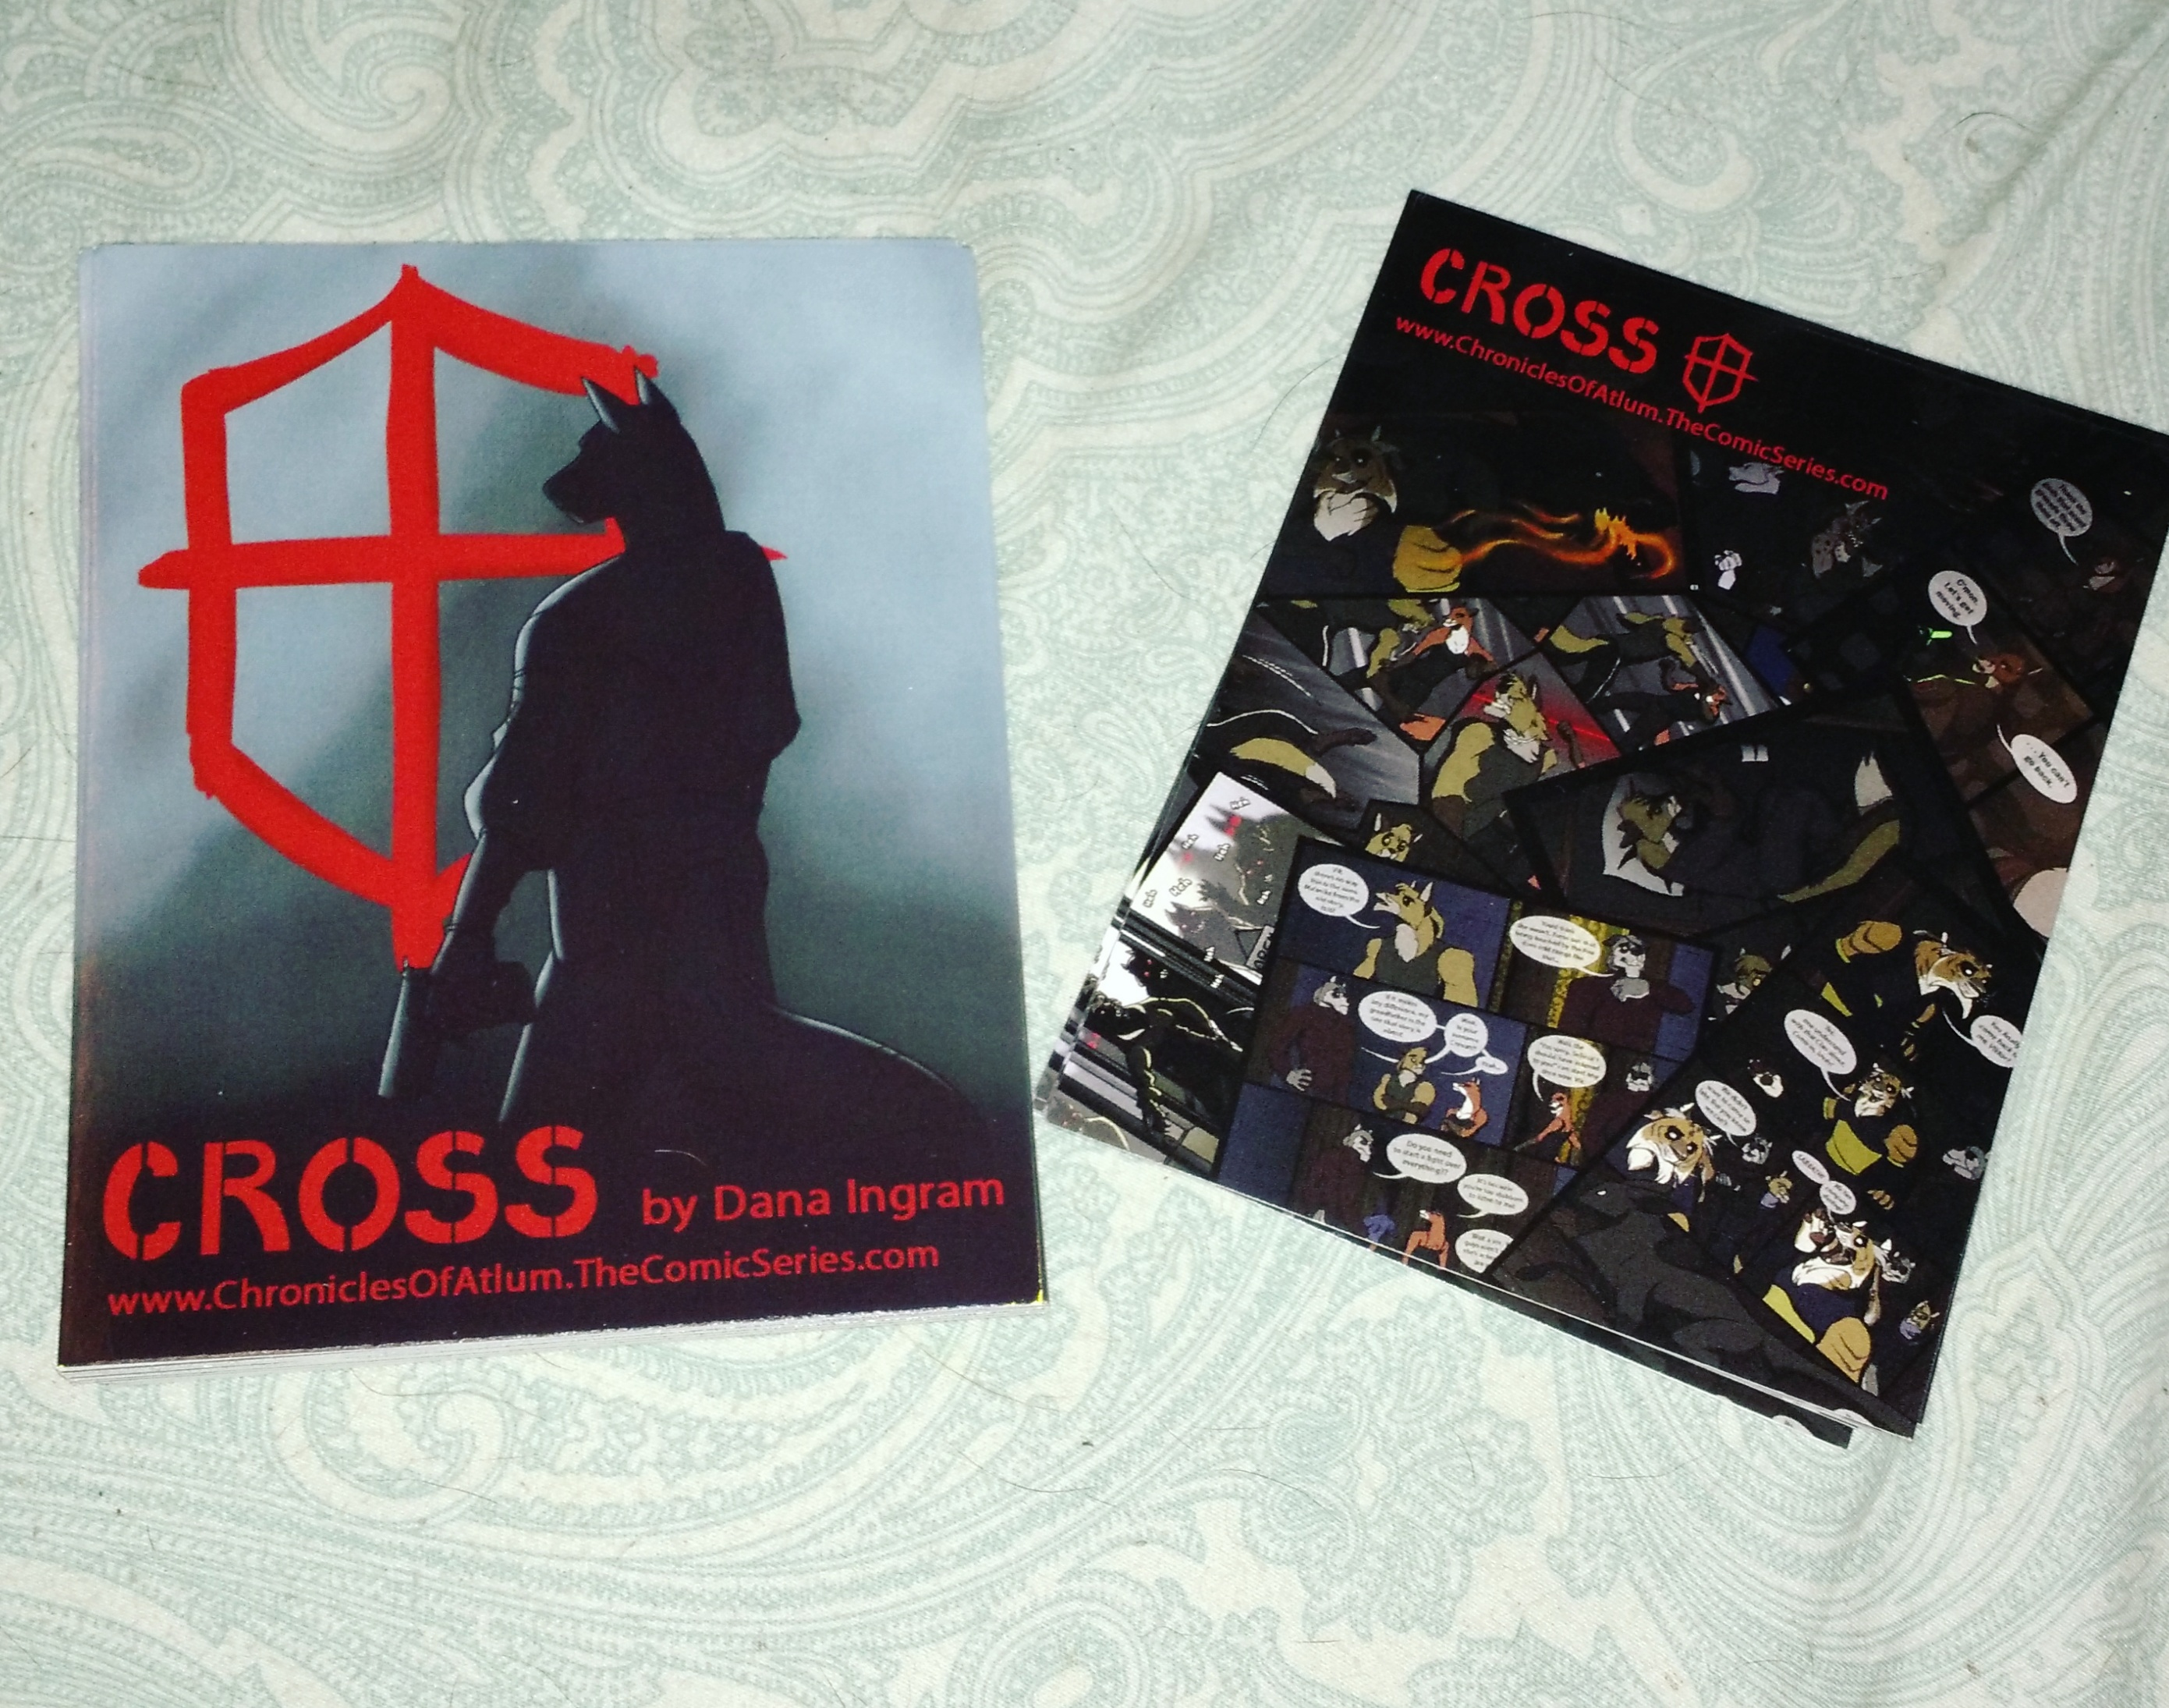 Cross Postcards for Sale!